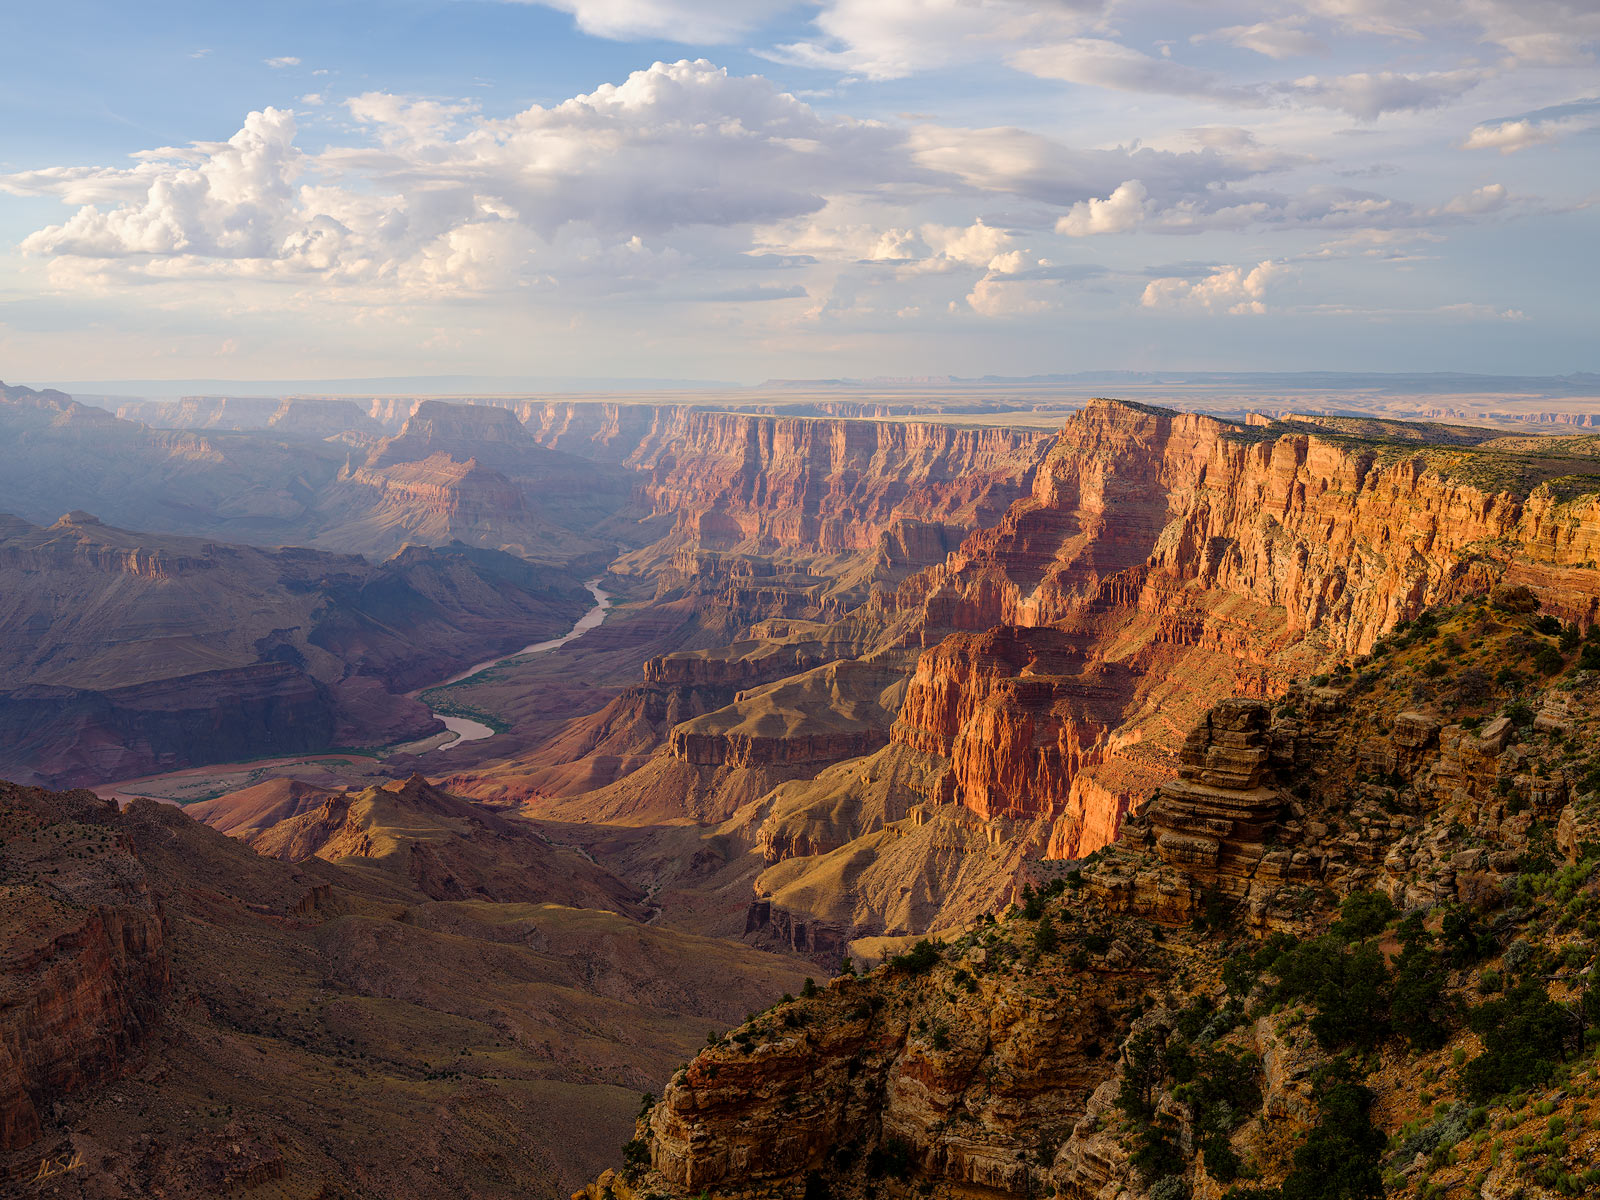 The sky above Grand Canyon and Palisades of the Desert fills with beautiful clouds as the Colorado River meanders far below....